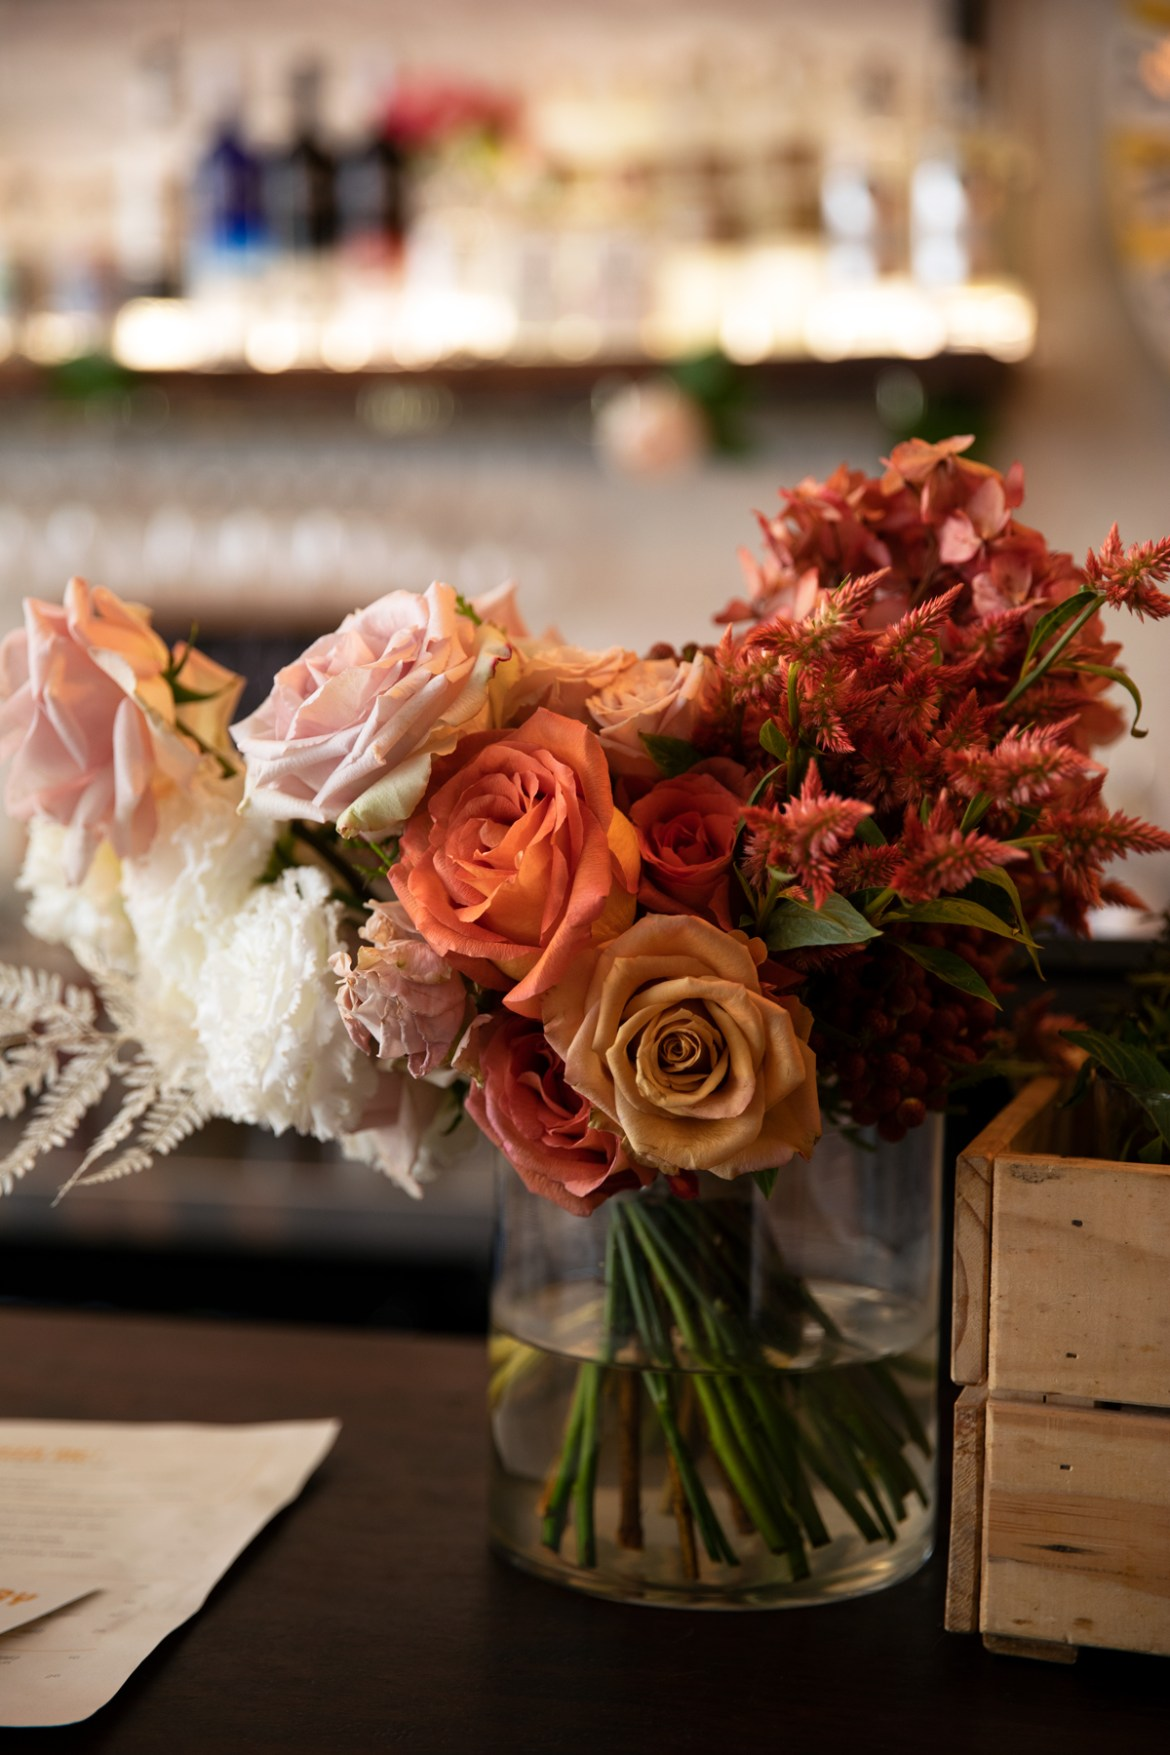 Valentine's day roses at the Flour Factory